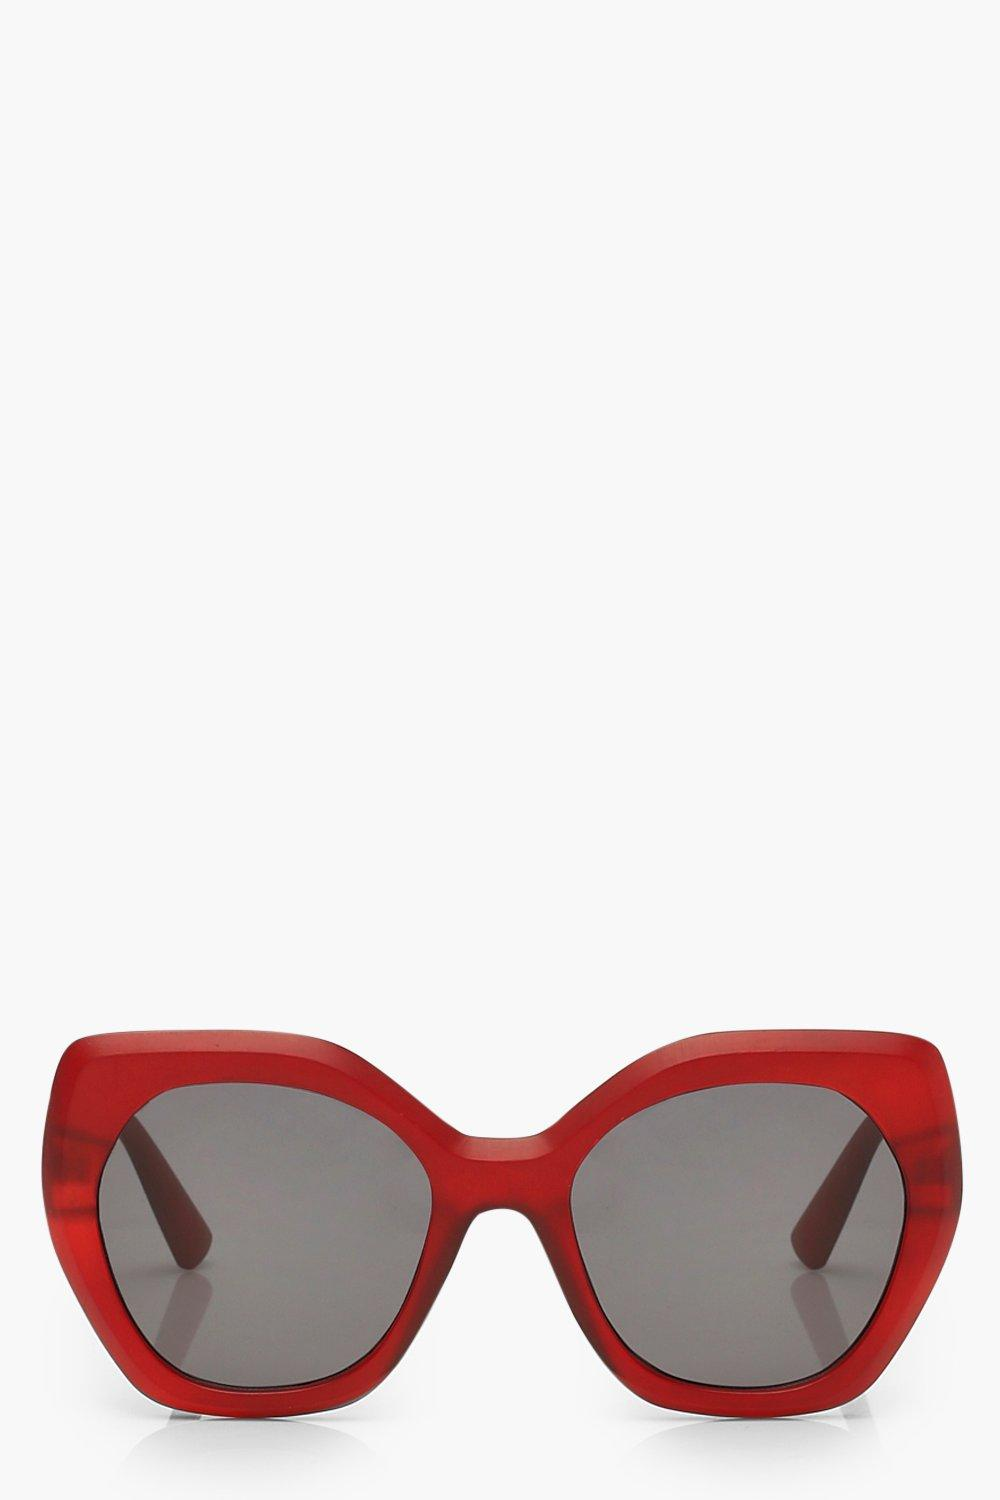 boohoo Womens Frosted Oversized Sunglasses - Red - One Size, Red